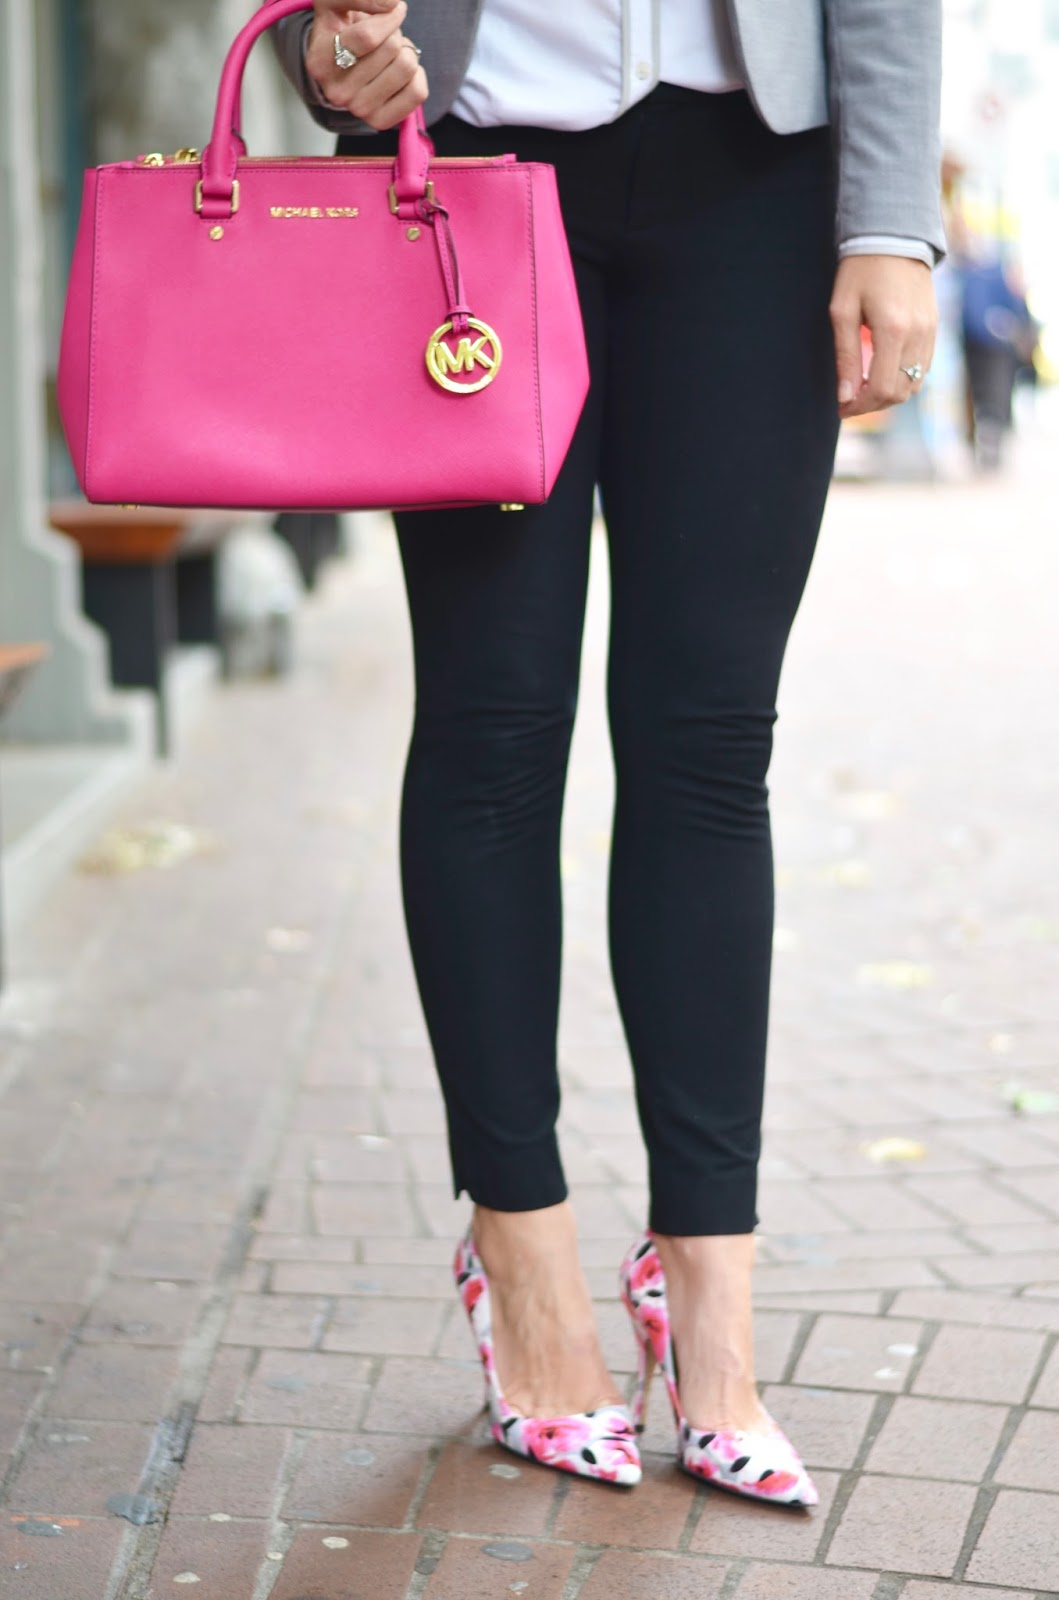 corporate-outfit-with-bold-handbag